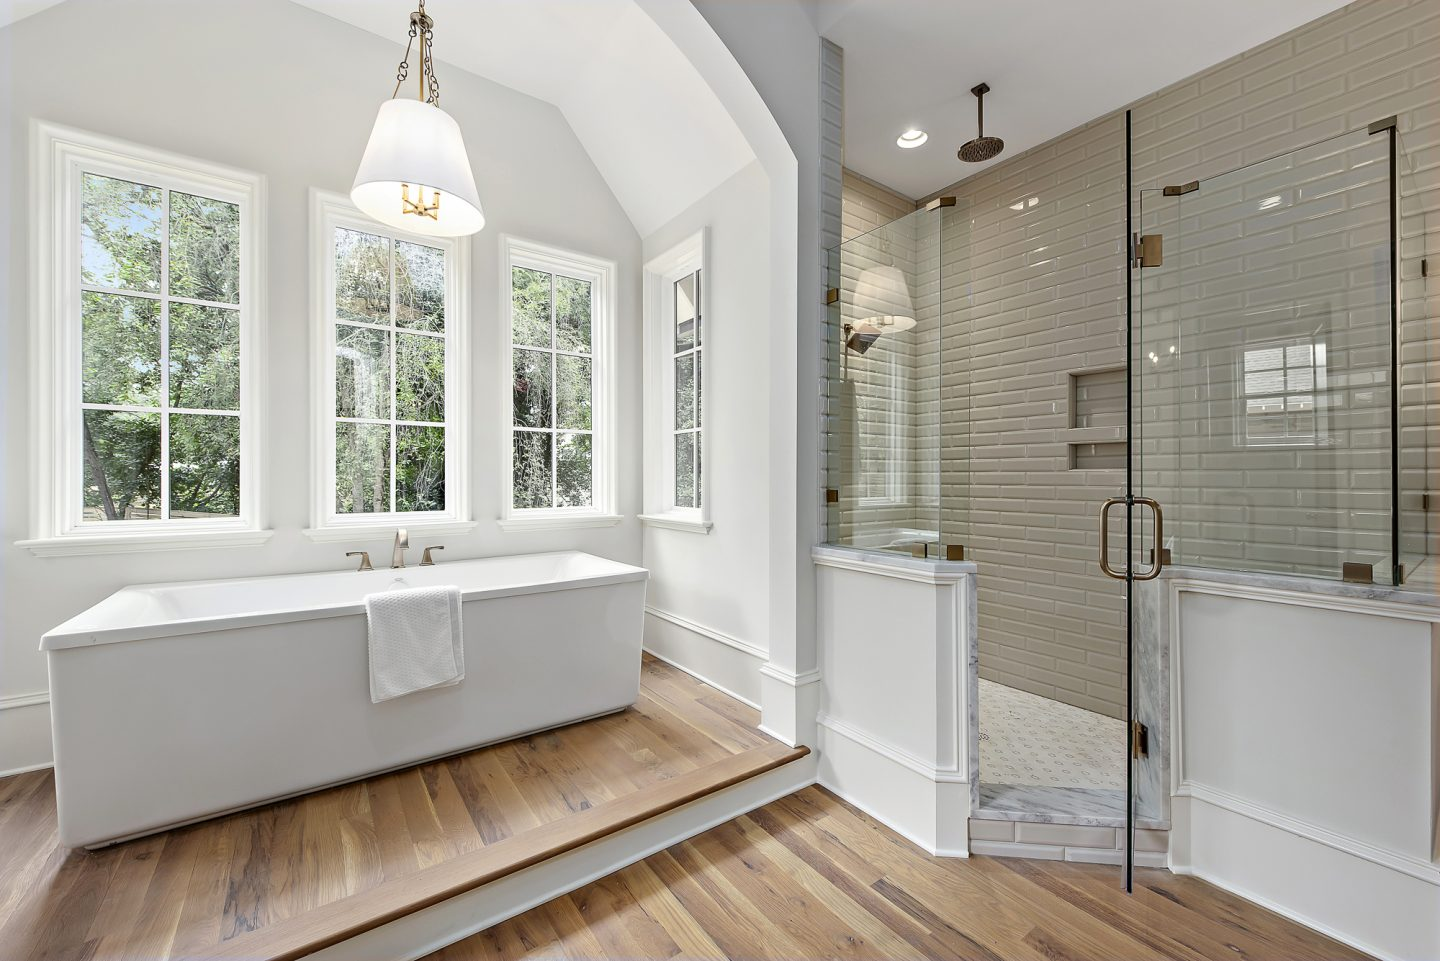 luxury master bathroom - Charlotte, NC - Schwaiger Realty Group